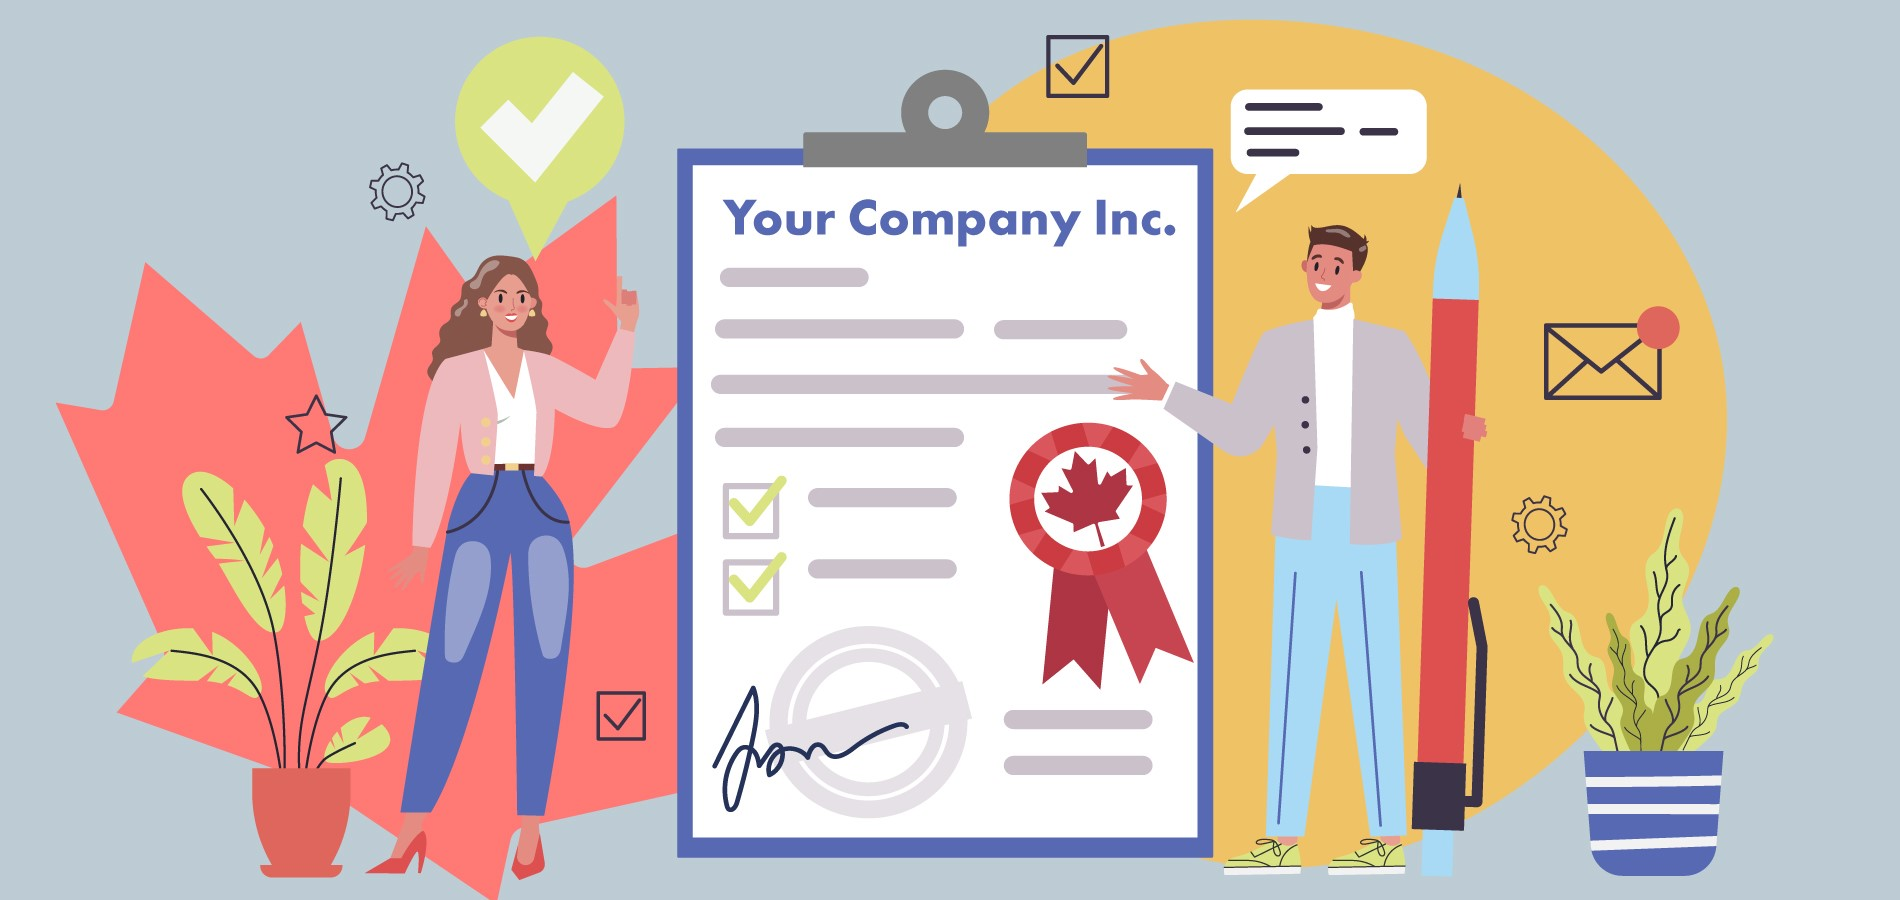 Everything you need to know about incorporation in Canada